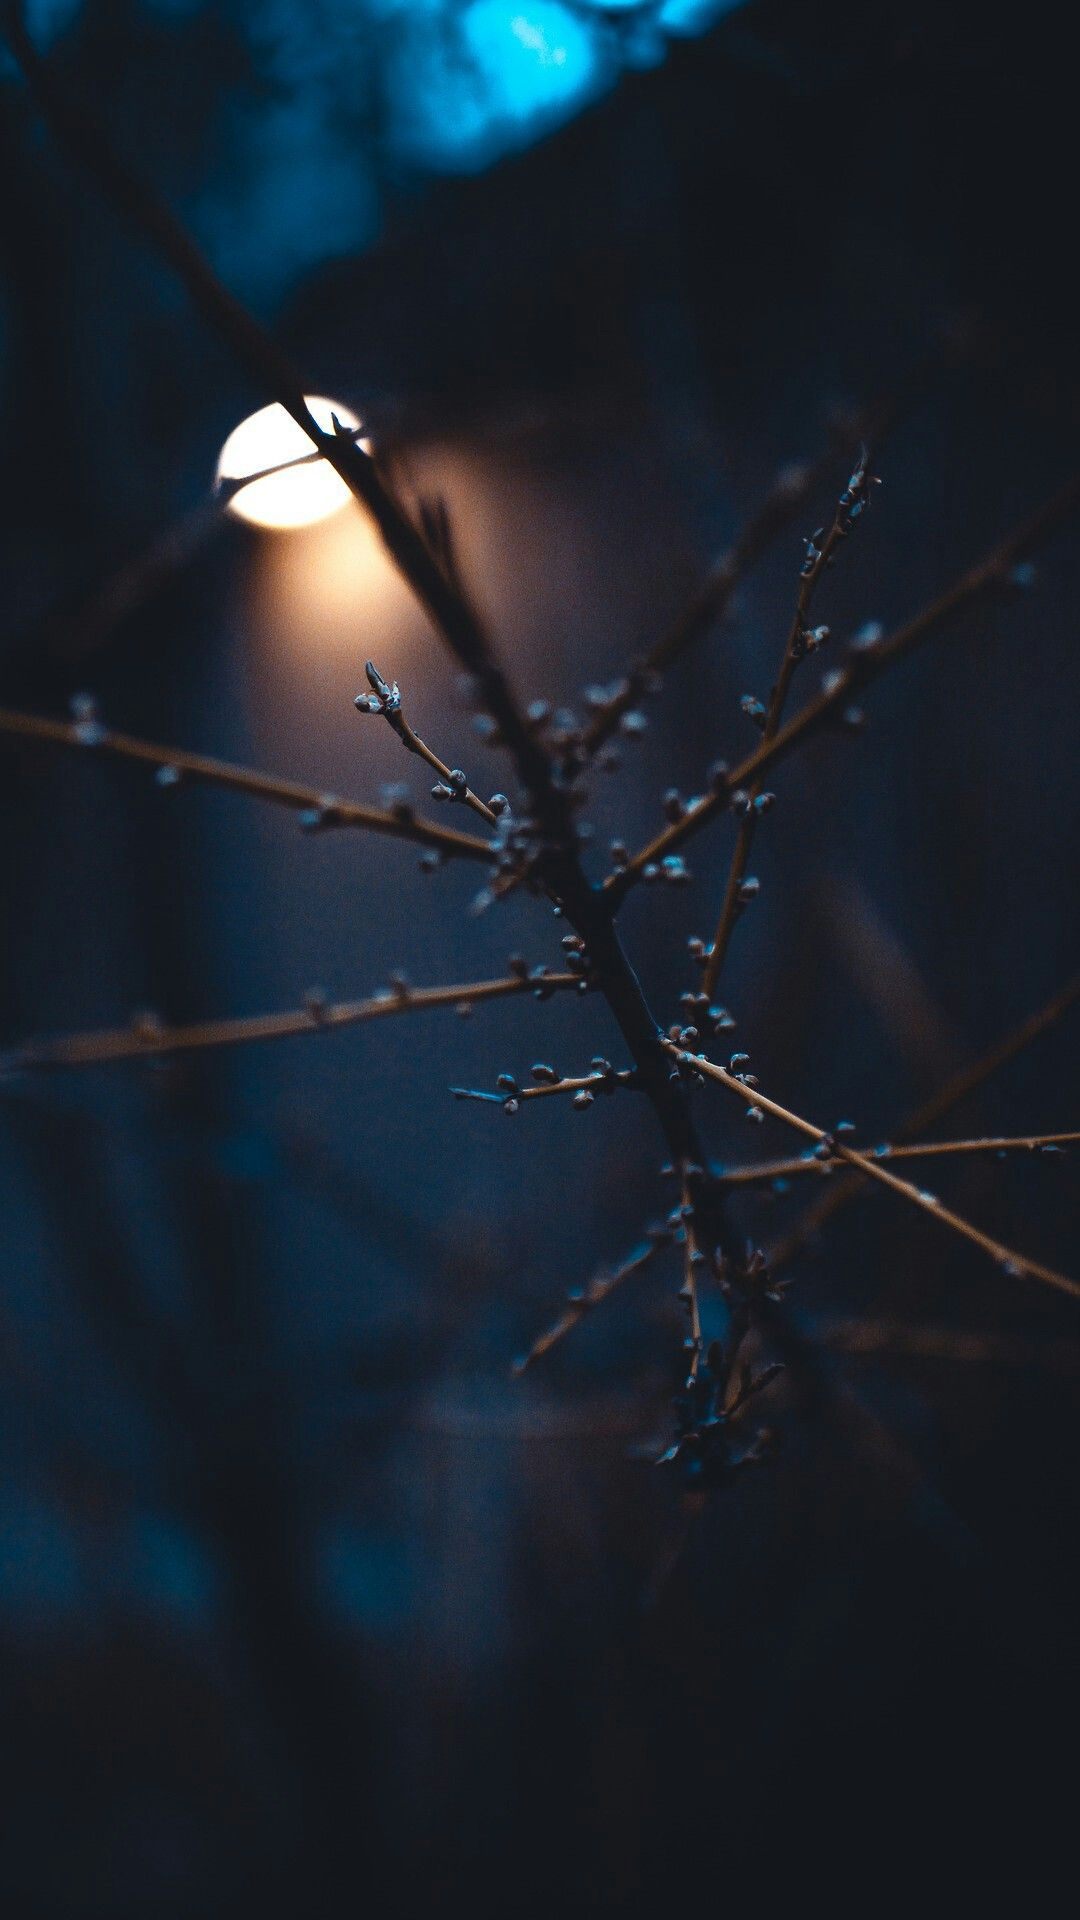 Branches Nature Aesthetic Nature Photography Wallpaper Backgrounds